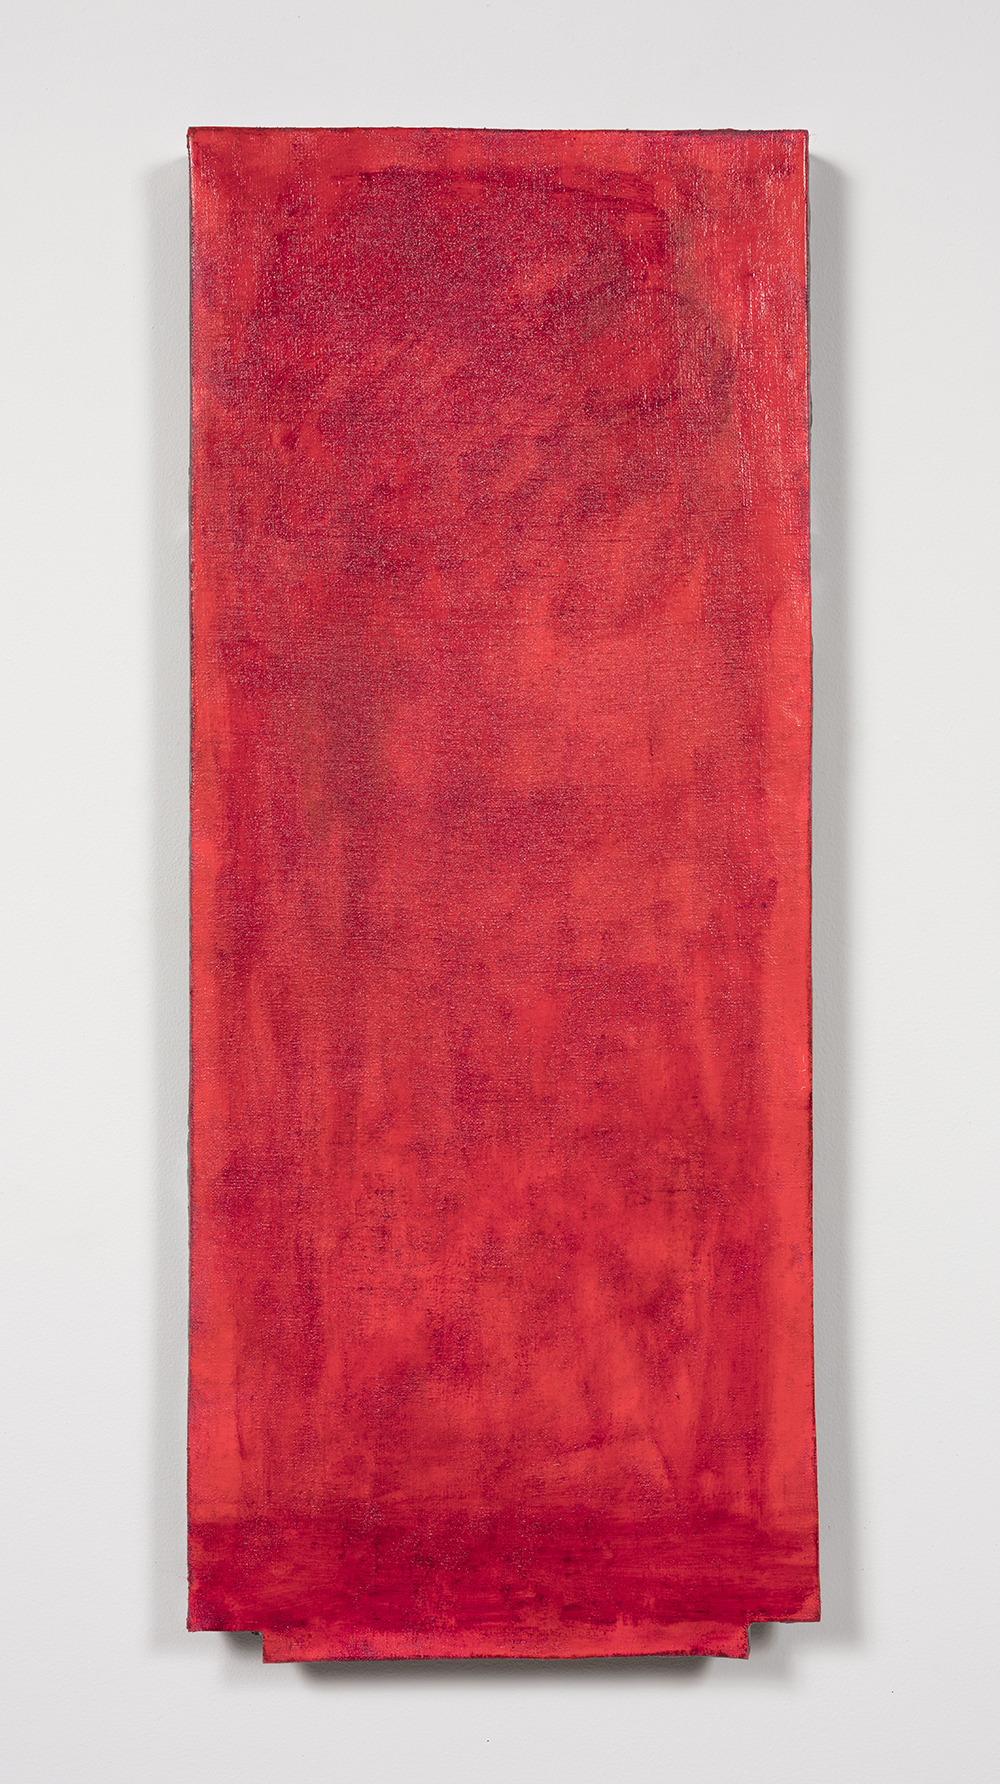 Graham Collins. <i>West 19th St.</i>, 2019. Oil and enamel on hemp laid on ceramic, 34 1/8 x 14 1/8 inches  (86.7 x 35.9 cm)